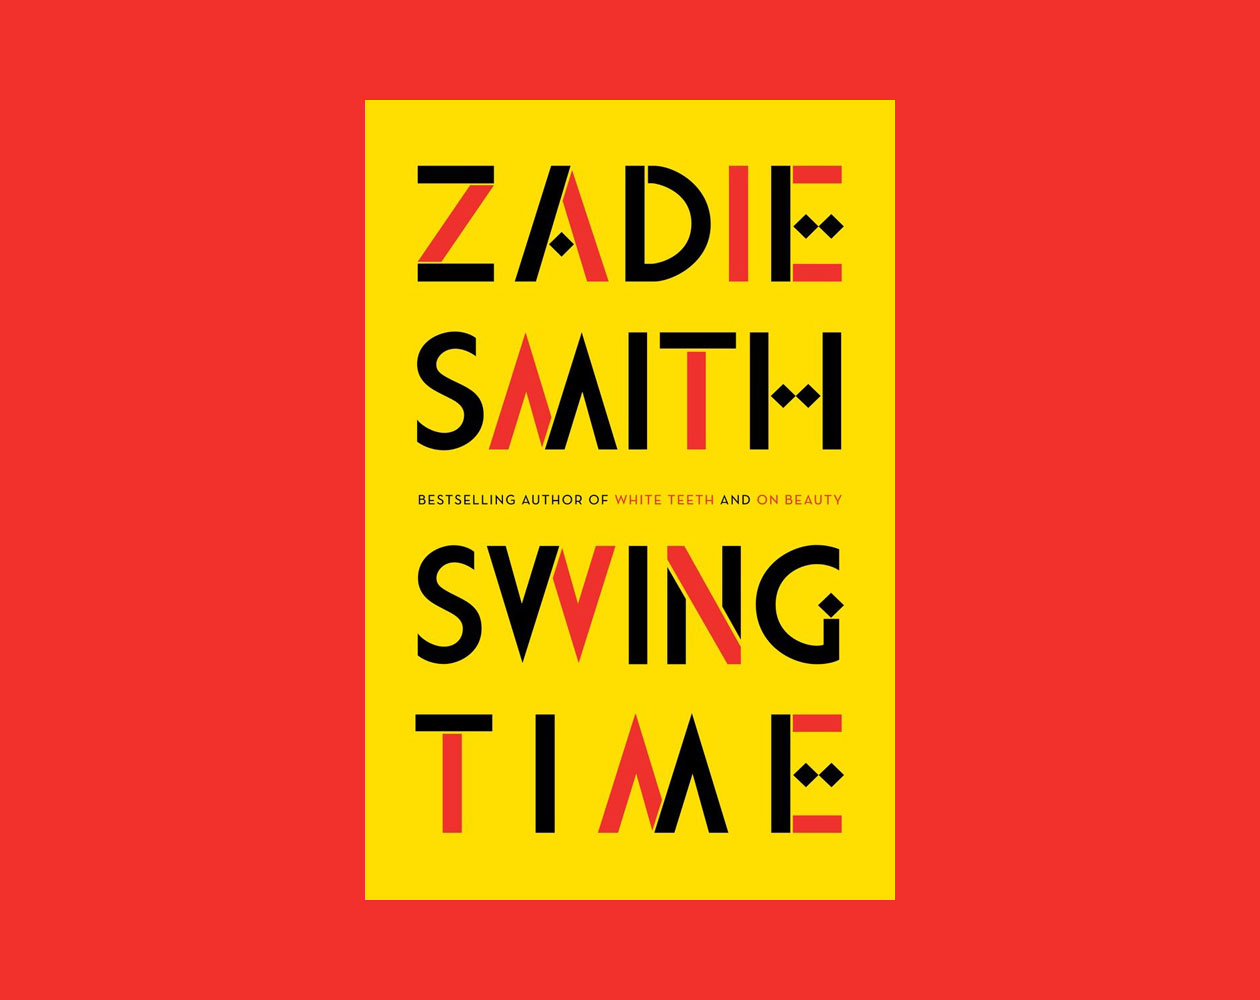 review of zadie smiths stuart James lasdun enjoys echoes of forster in zadie smith's expansive and witty new novel, on beauty.